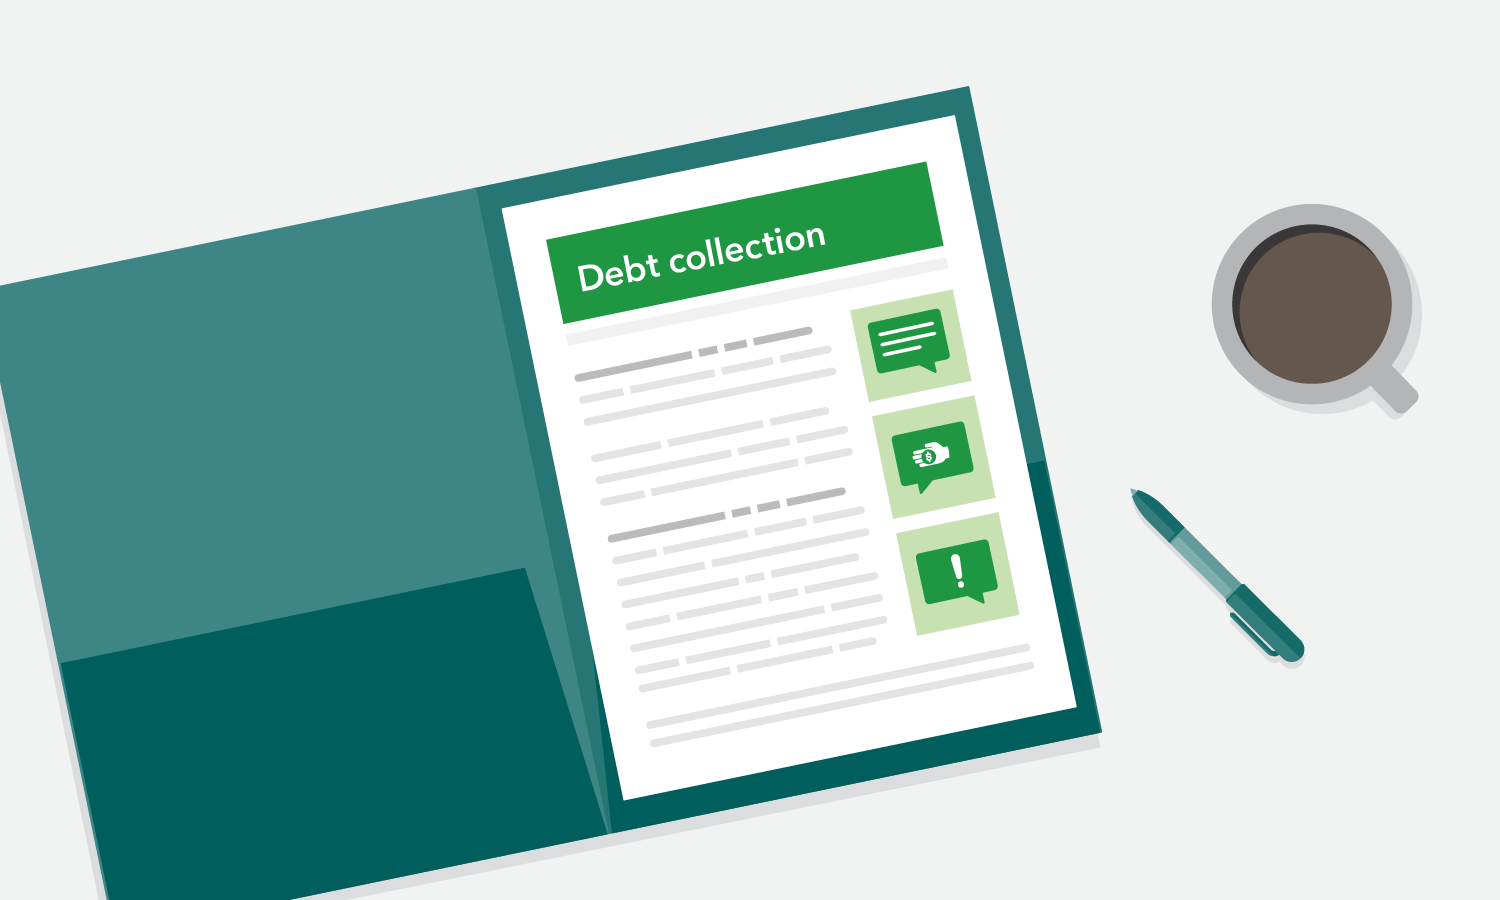 Debt collection blog illustration